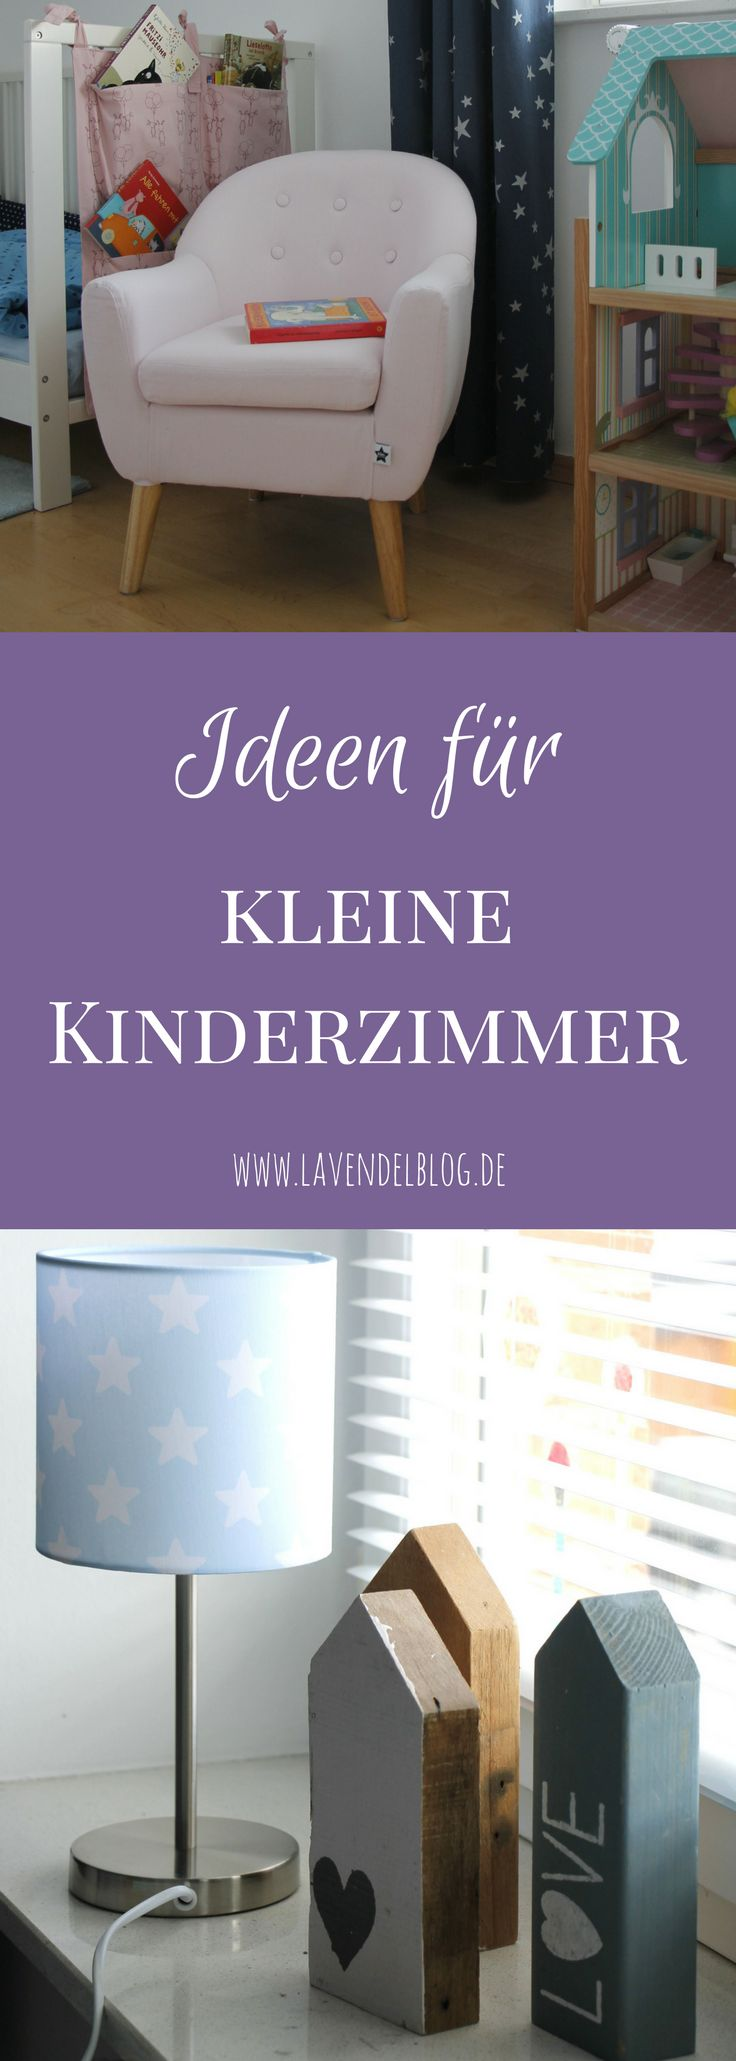 die besten 25 kleines kinderzimmer ideen auf pinterest kleine kinderzimmer kleines. Black Bedroom Furniture Sets. Home Design Ideas